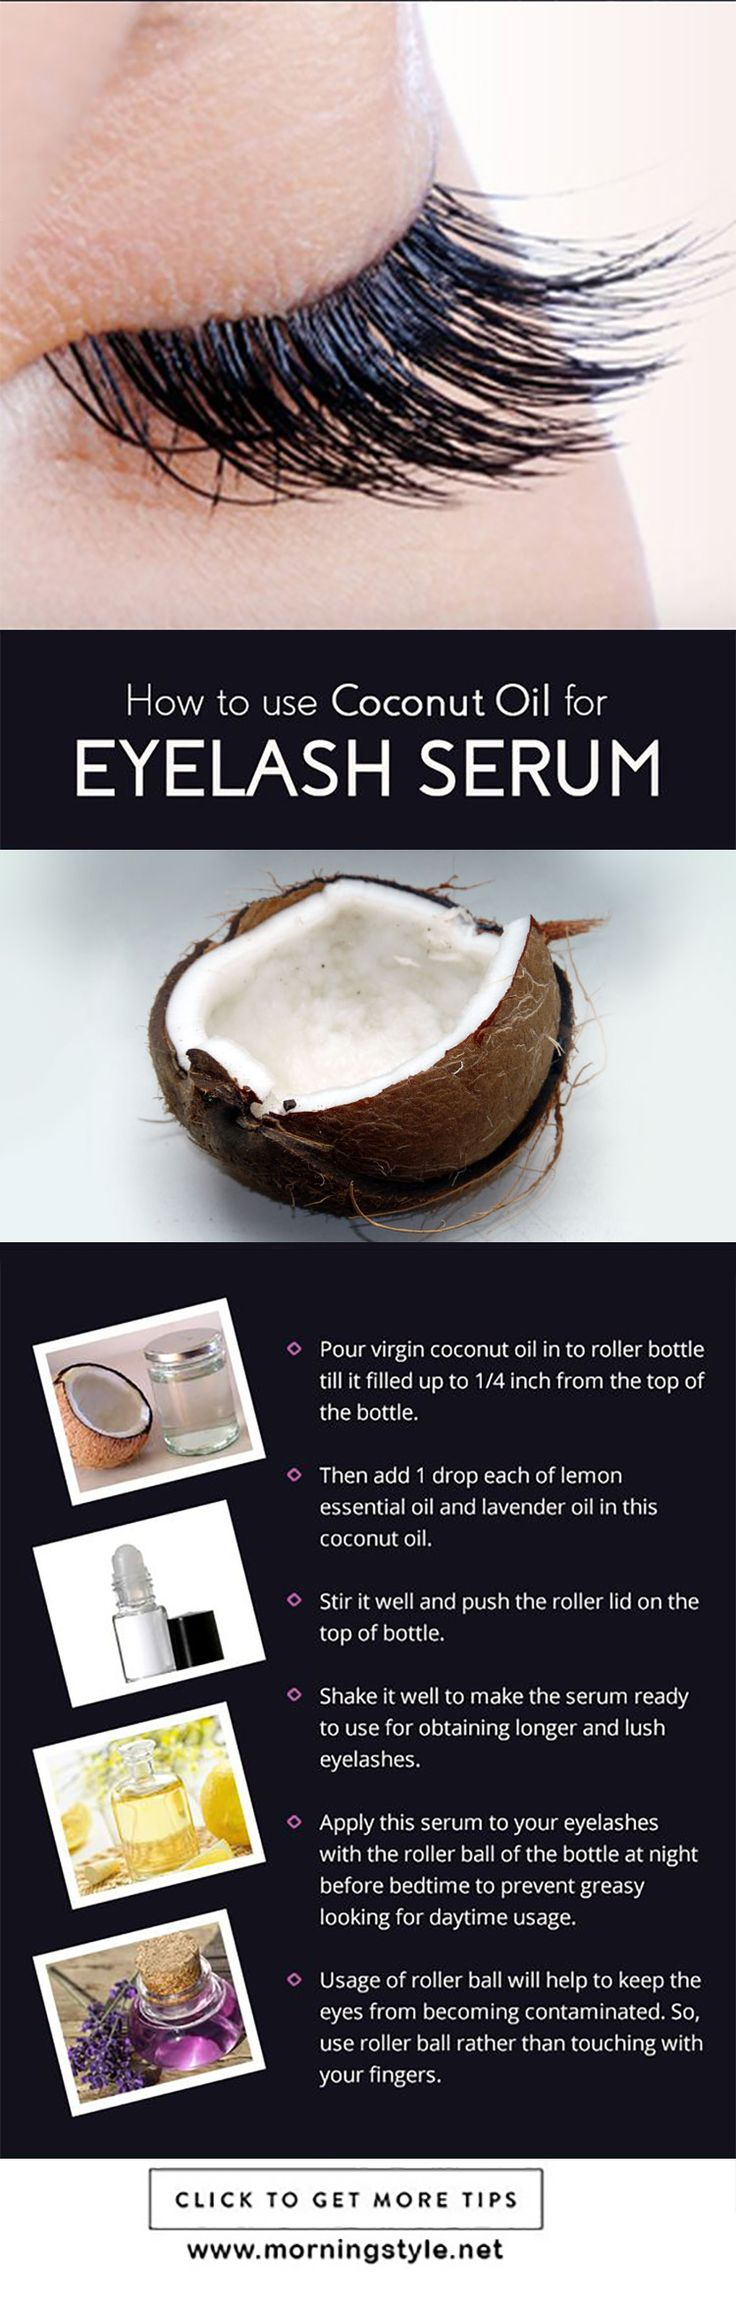 Coconut Oil for Eyelashes – Benefits and How to Use It | Healthy Society. coconut oil uses | coconut oil hair mask | coconut oil | coconut oil uses for hair | coconut oil hair | Coconut Oil for Health | Coconut Oil Tips | Skinny Coconut Oil |